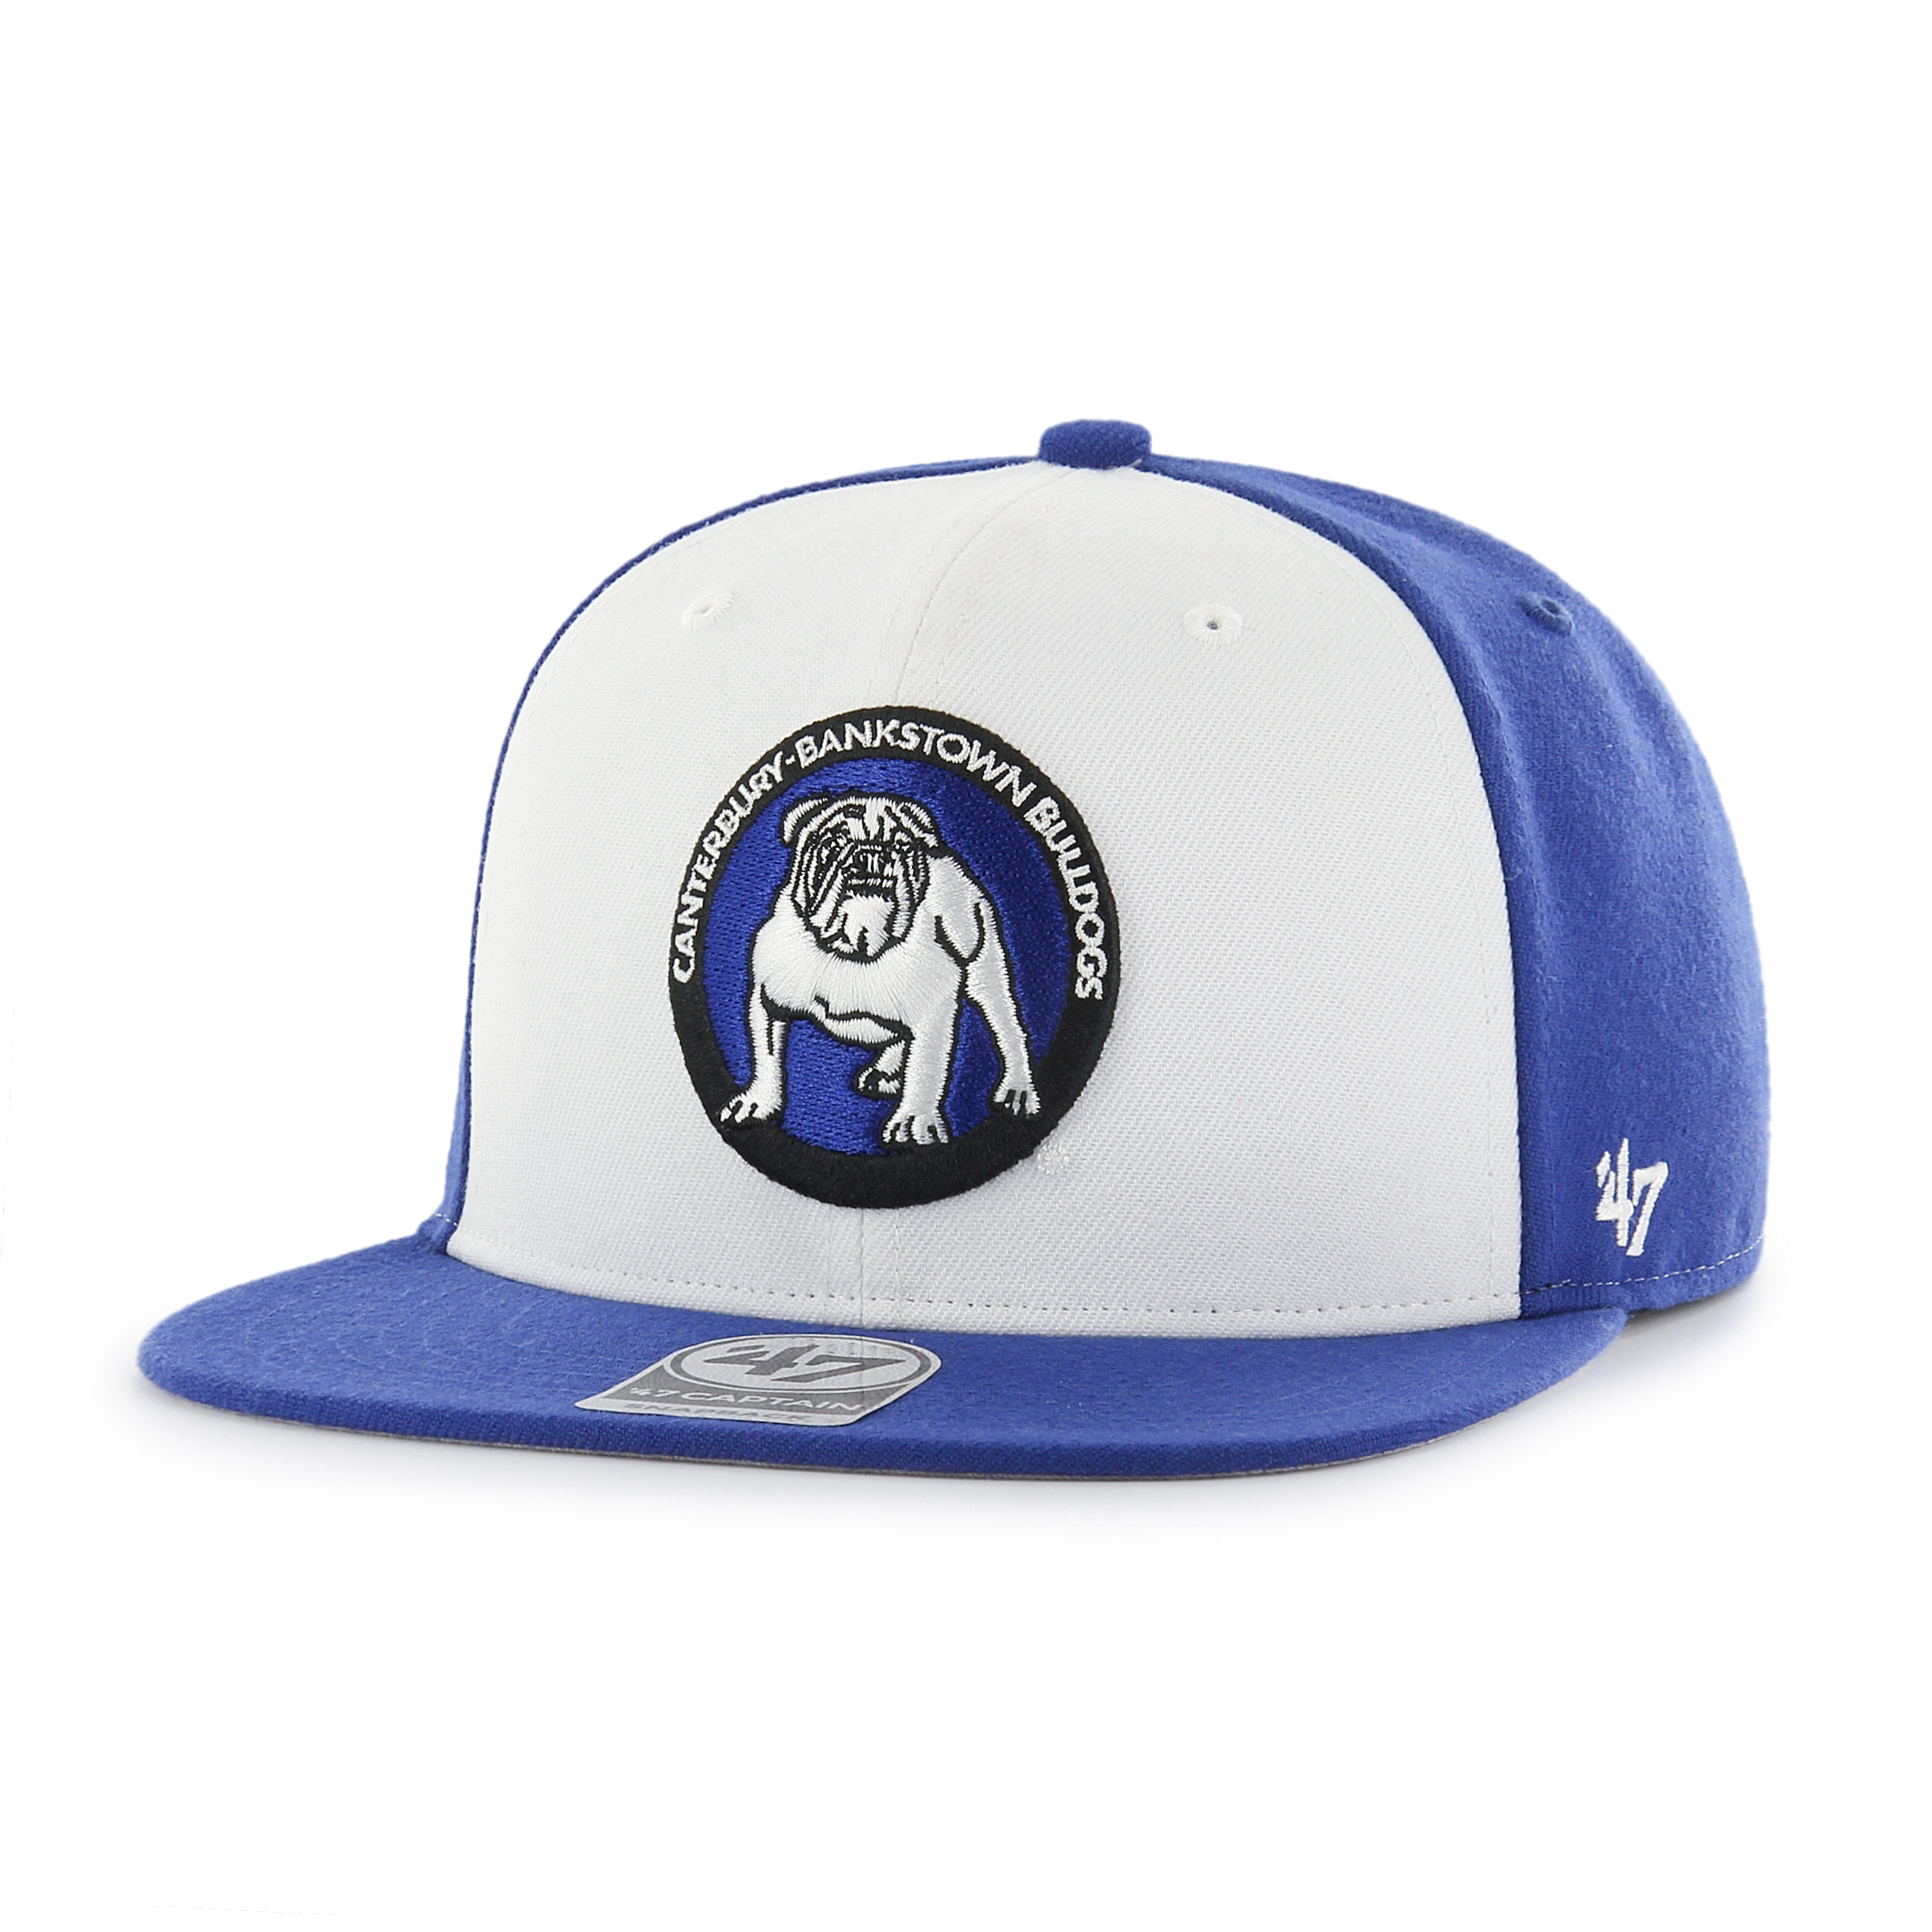 2f1fef09d70 Details about 47 Brand NRL Canterbury Bulldogs Adult Flat Brim Cap Hat  CAPTAIN (White   Blue)